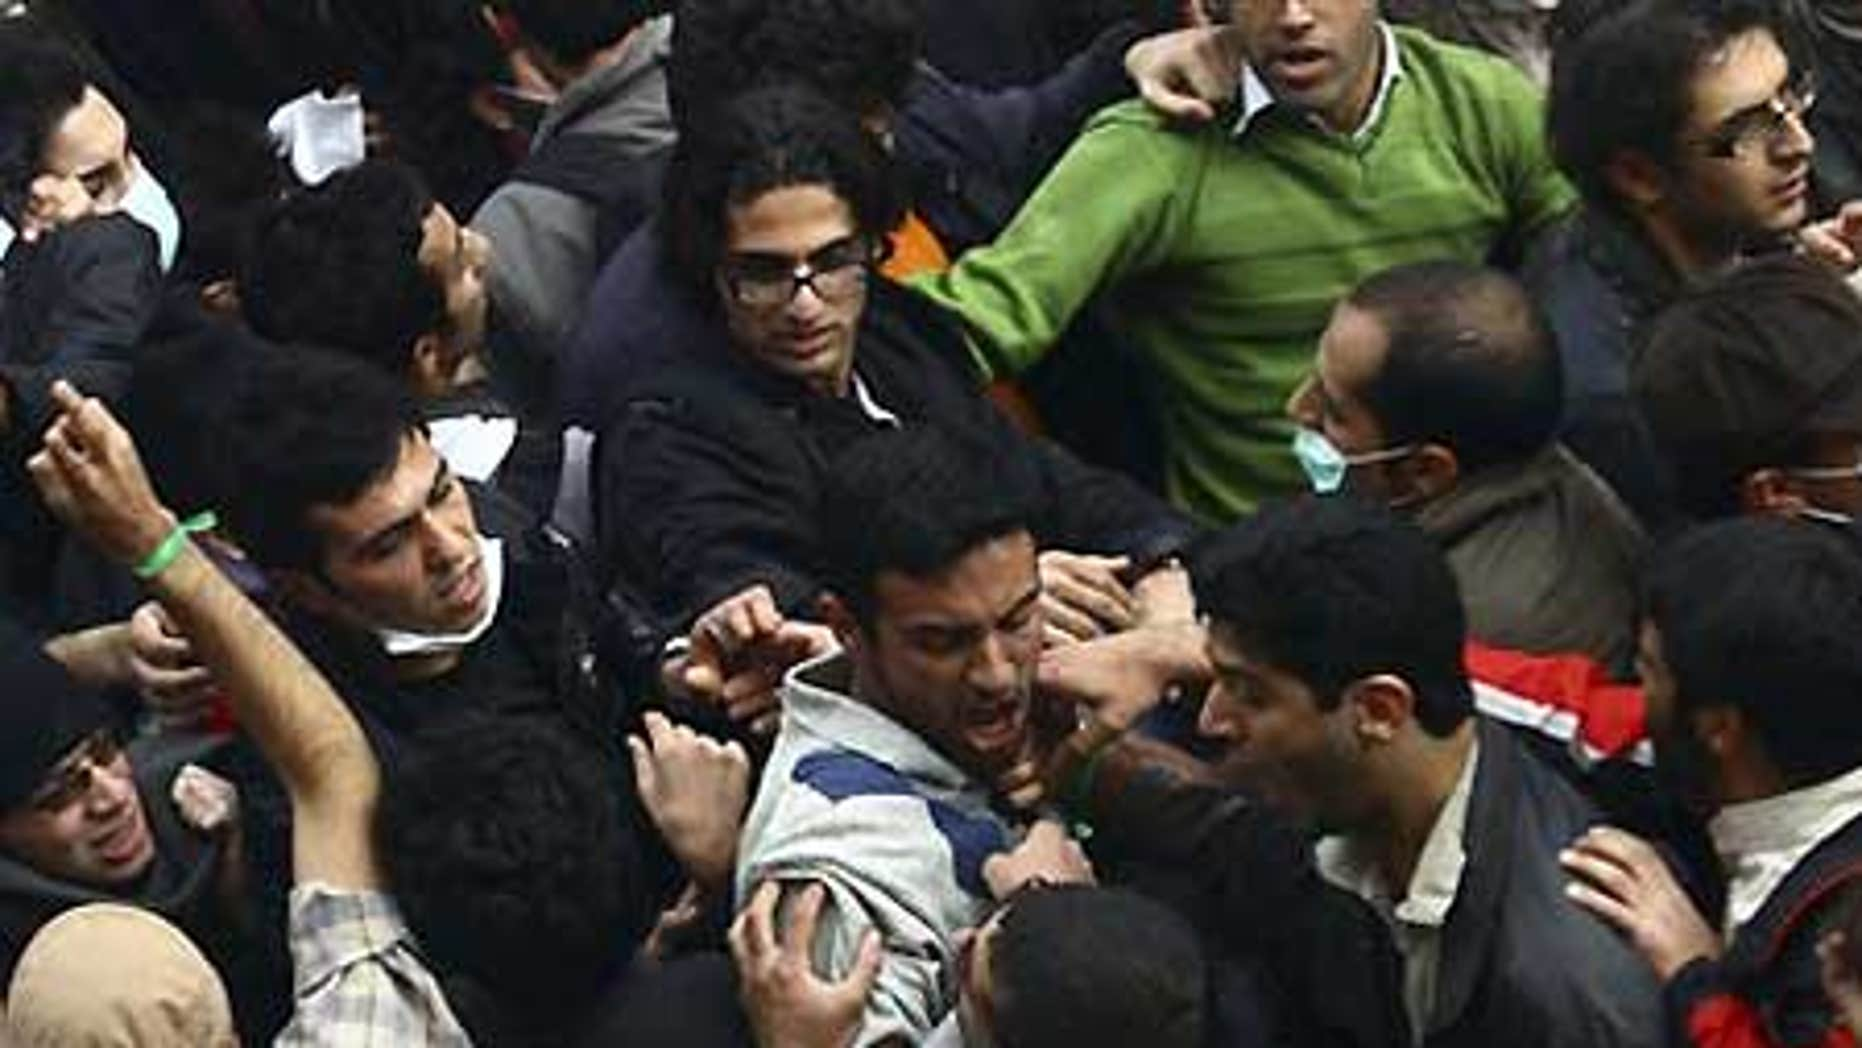 Dec. 7: Pro-reform Iranian students and hard-line students scuffle during their demonstrations at the Tehran University campus in Iran.